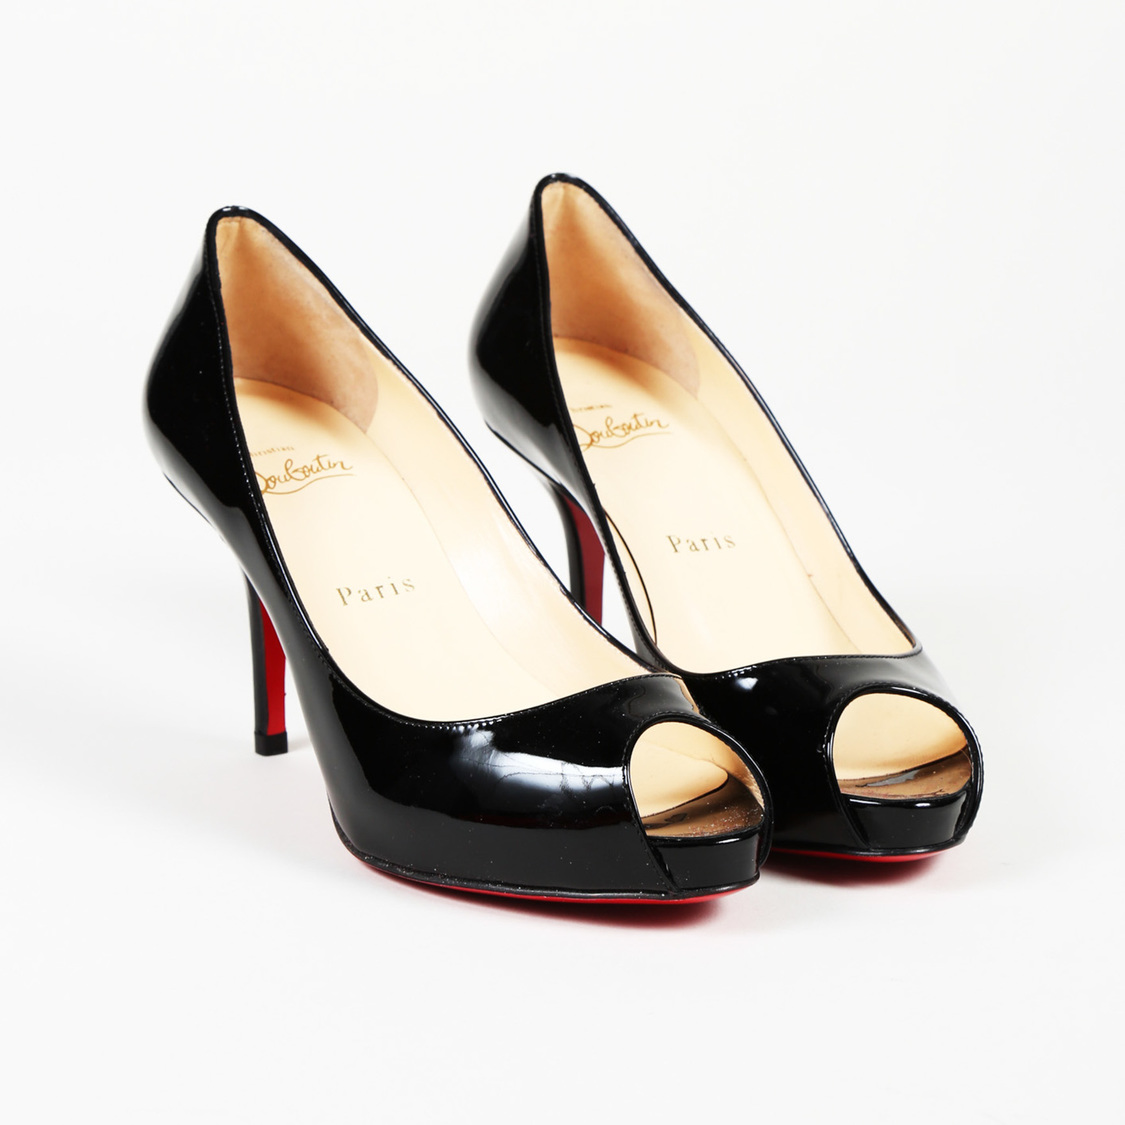 buy popular 2fd9a b4520 Details about Christian Louboutin